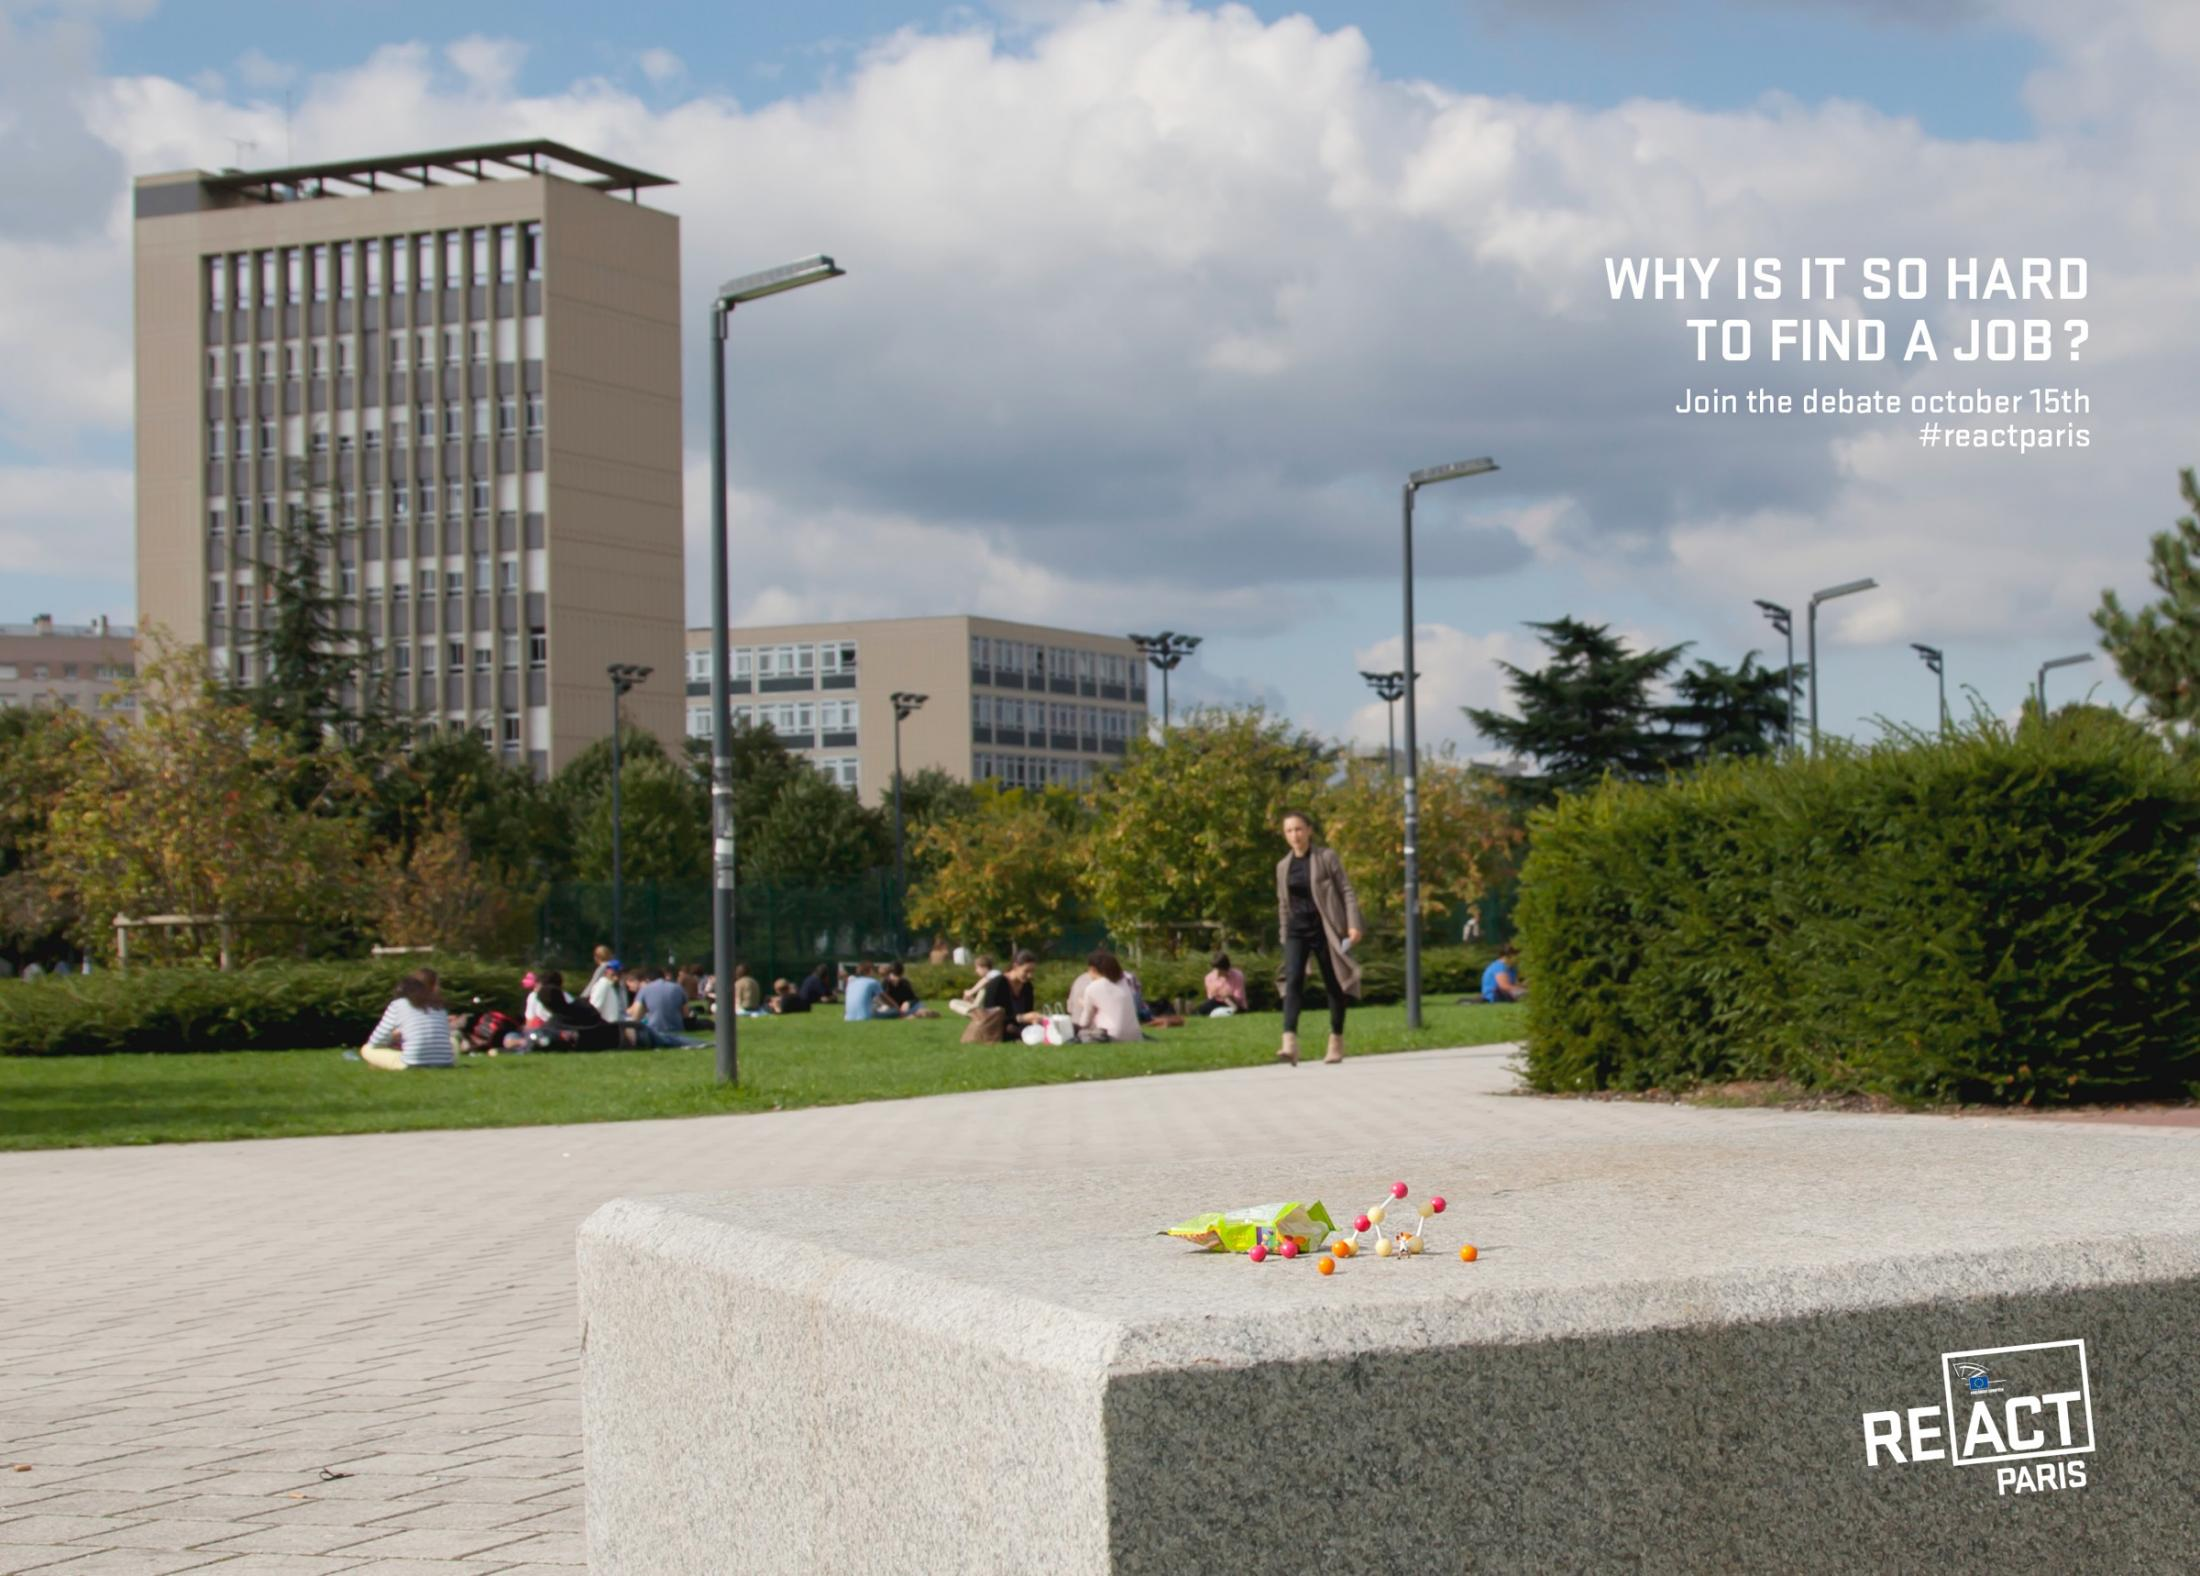 European Parliament Outdoor Ad -  Why is it so hard to find a job?, 3